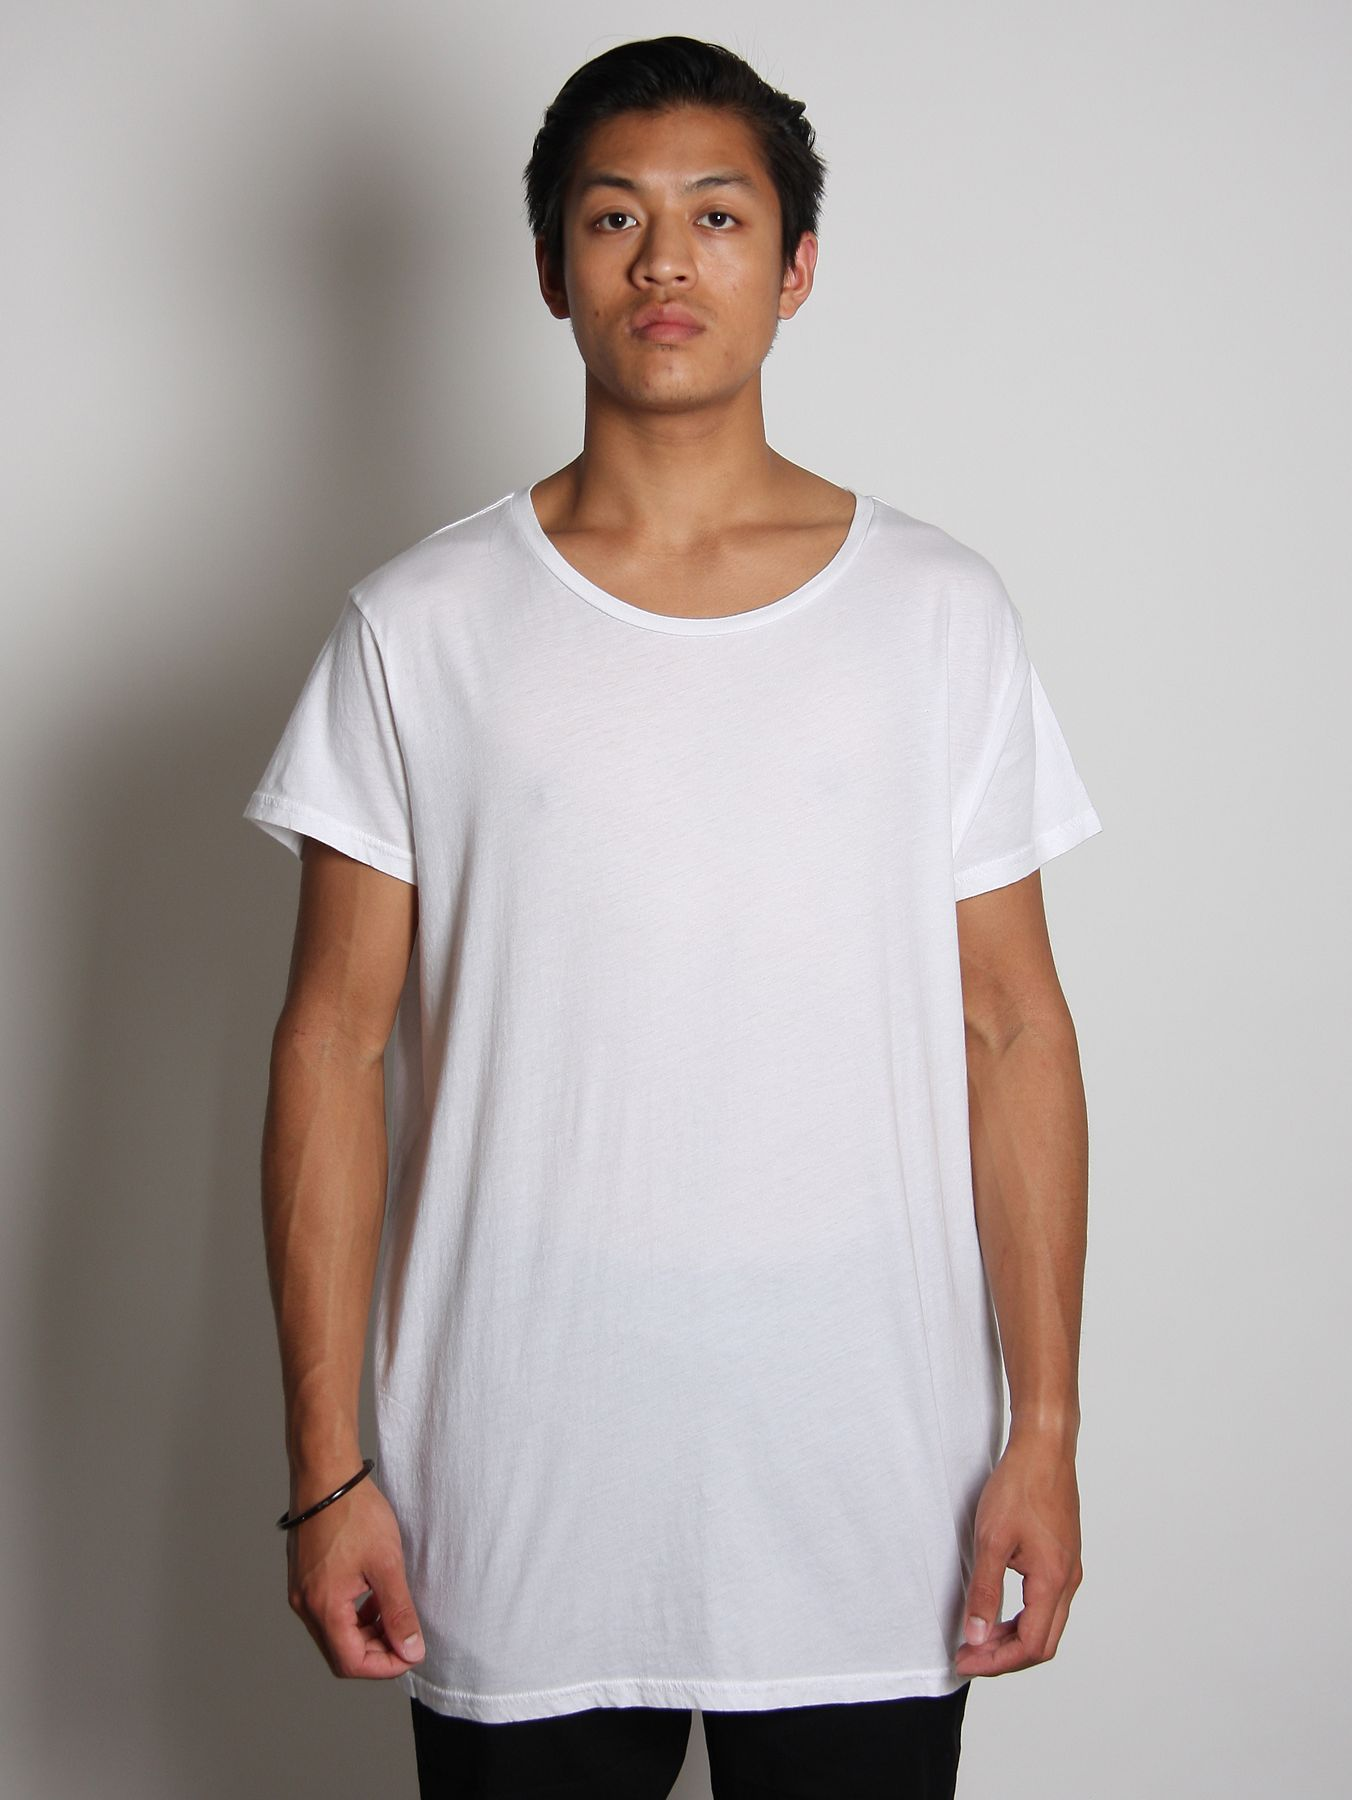 Find mens oversized t-shirt at ShopStyle. Shop the latest collection of mens oversized t-shirt from the most popular stores - all in one place.